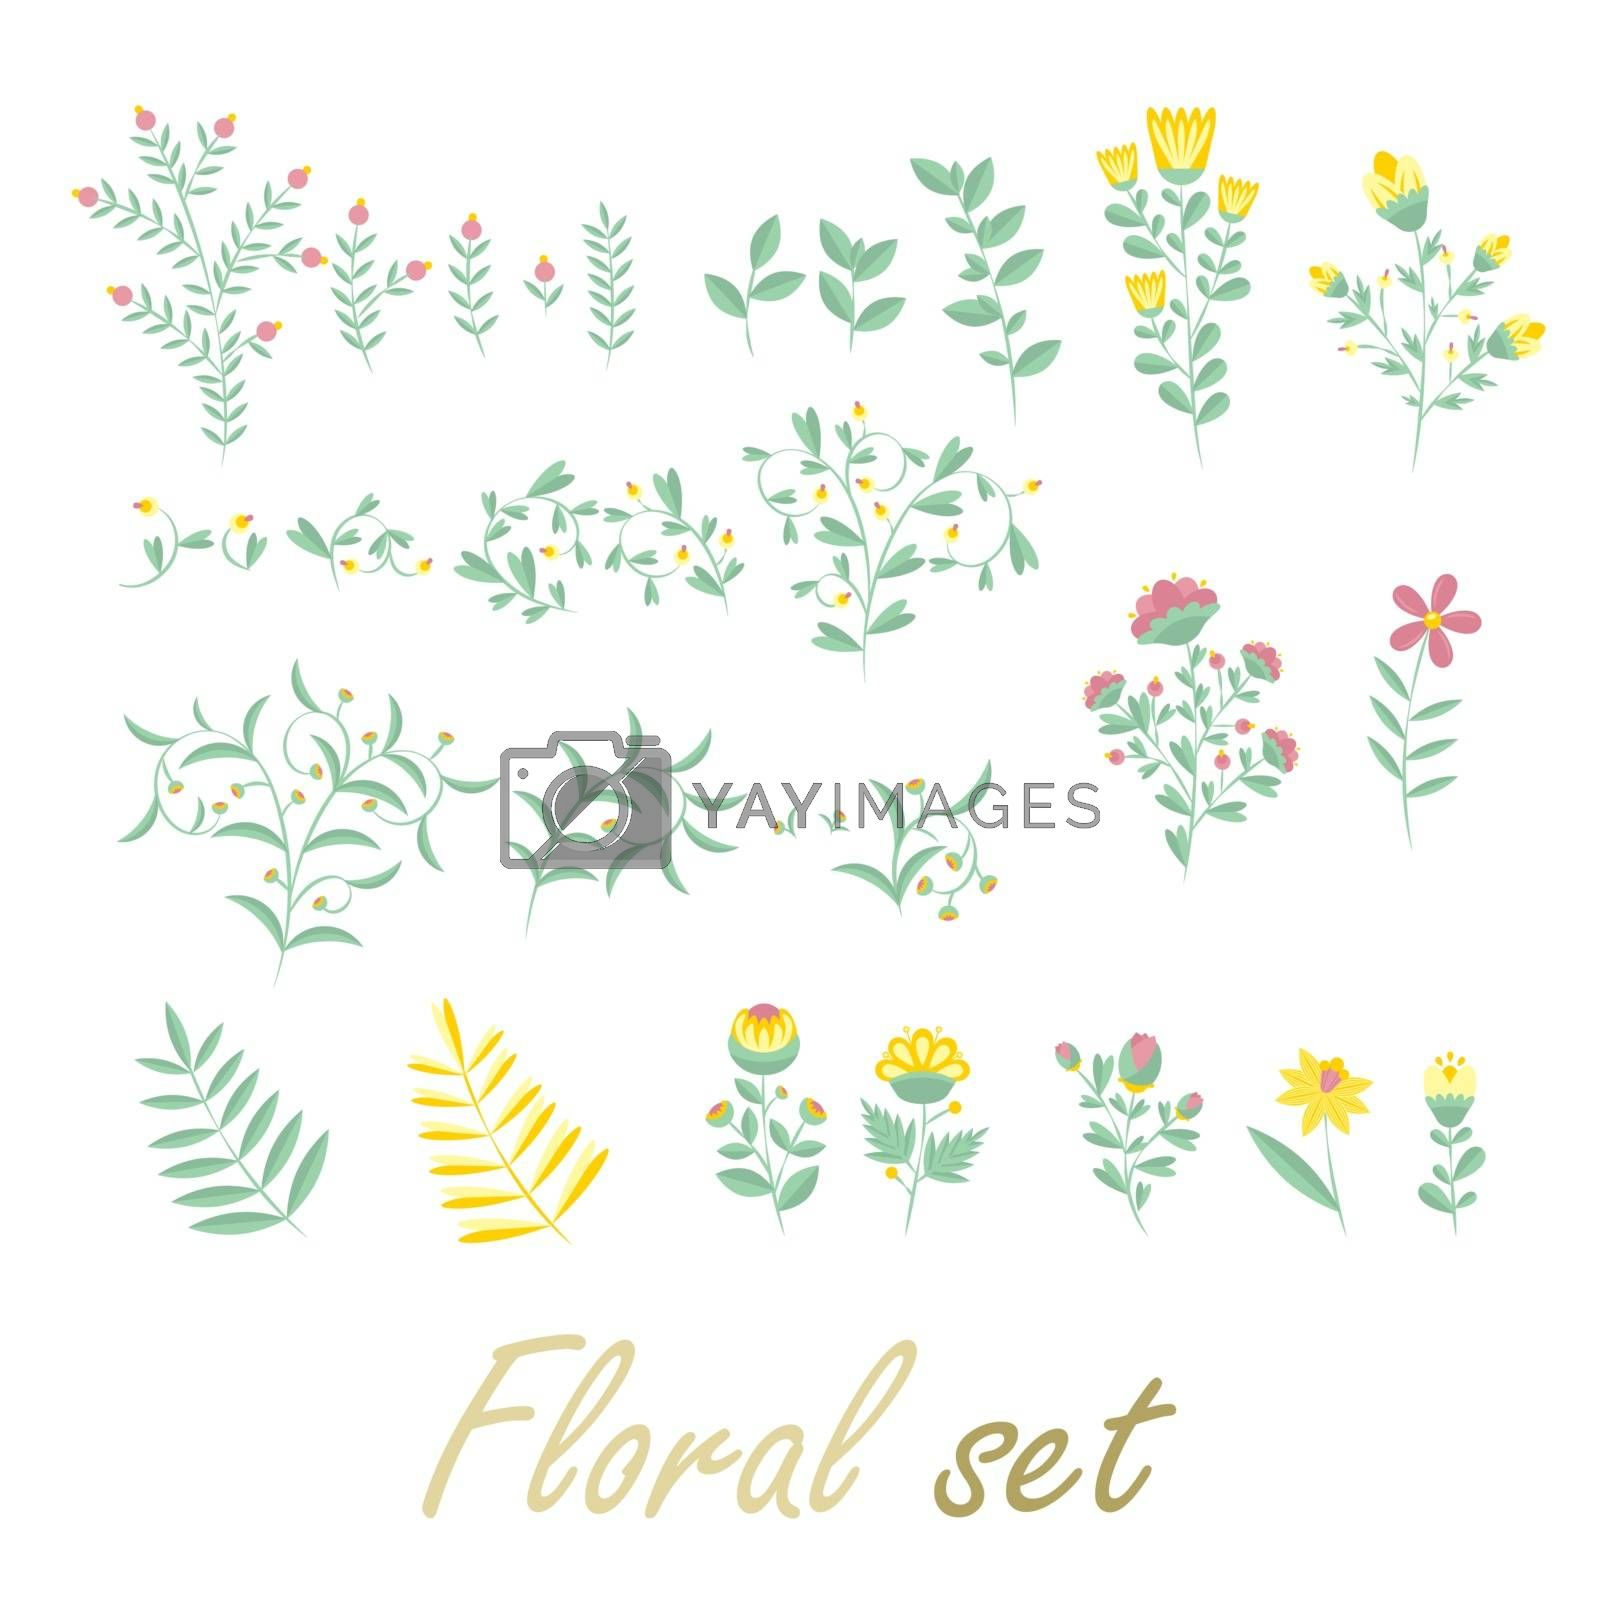 Colorful floral collection with flowers and leaves. Plant elements of summer herbs and flowers